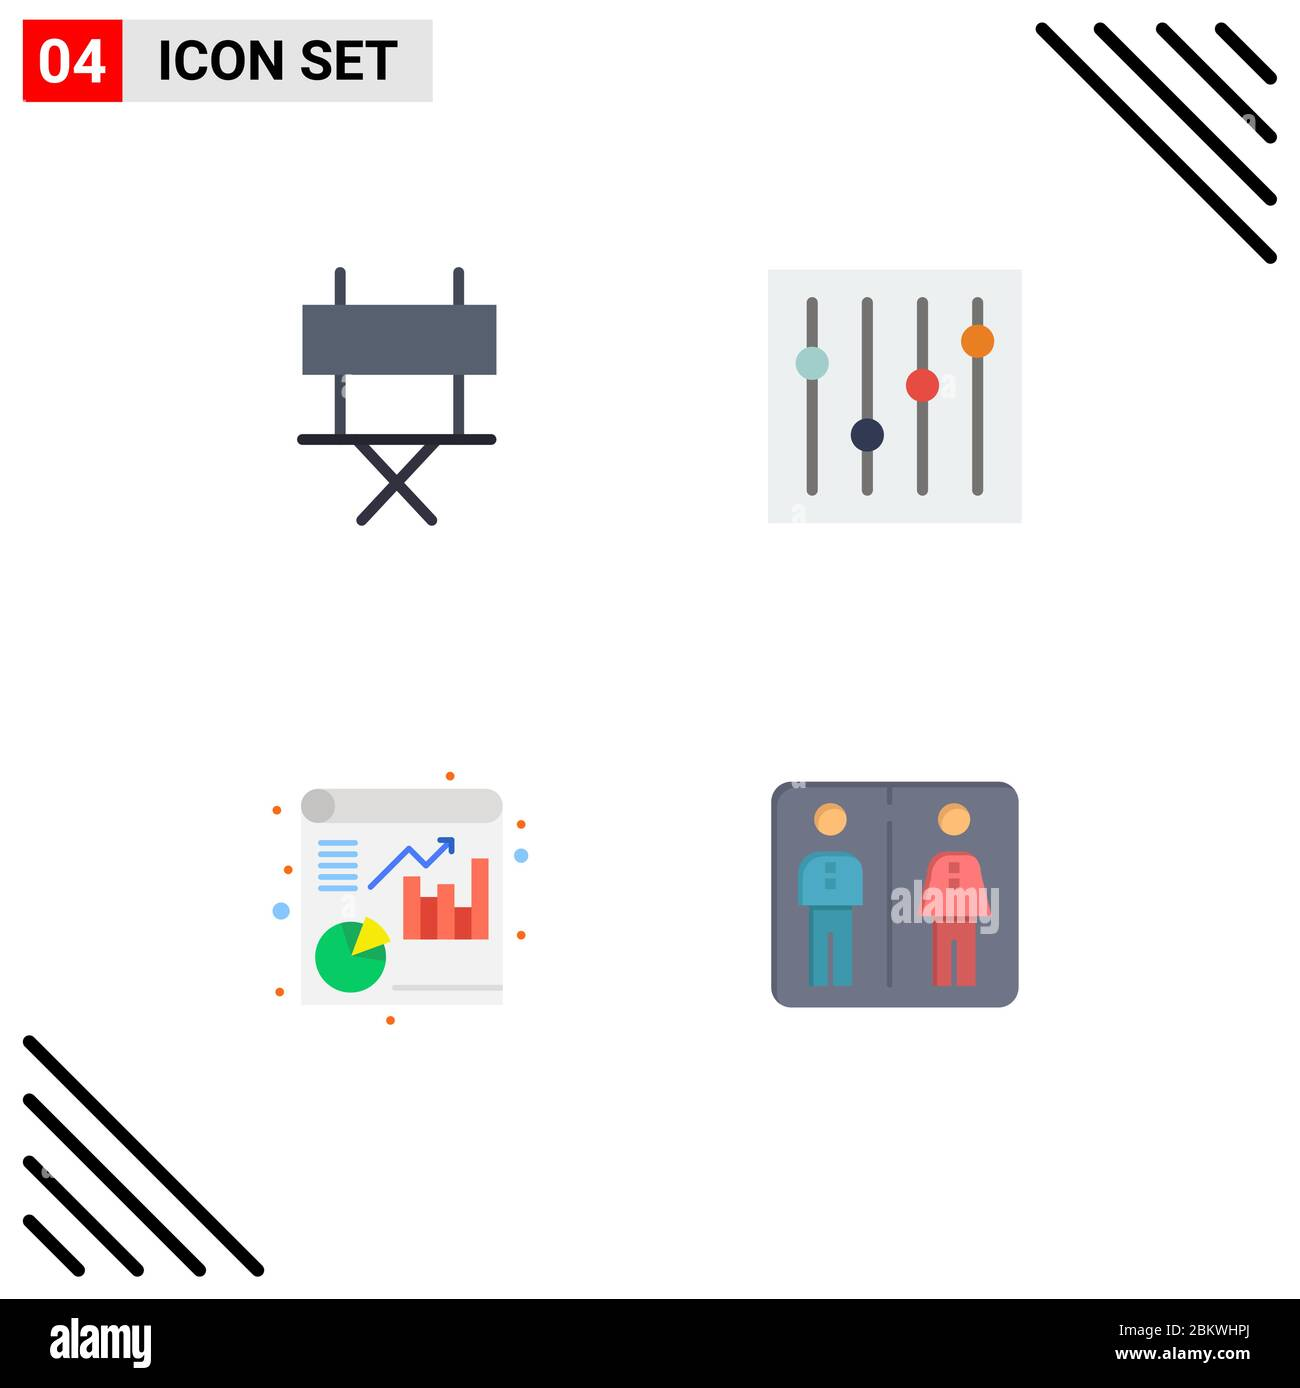 Group Of 4 Modern Flat Icons Set For Chair Report Folding Chair Tuning Elevator Editable Vector Design Elements Stock Vector Image Art Alamy